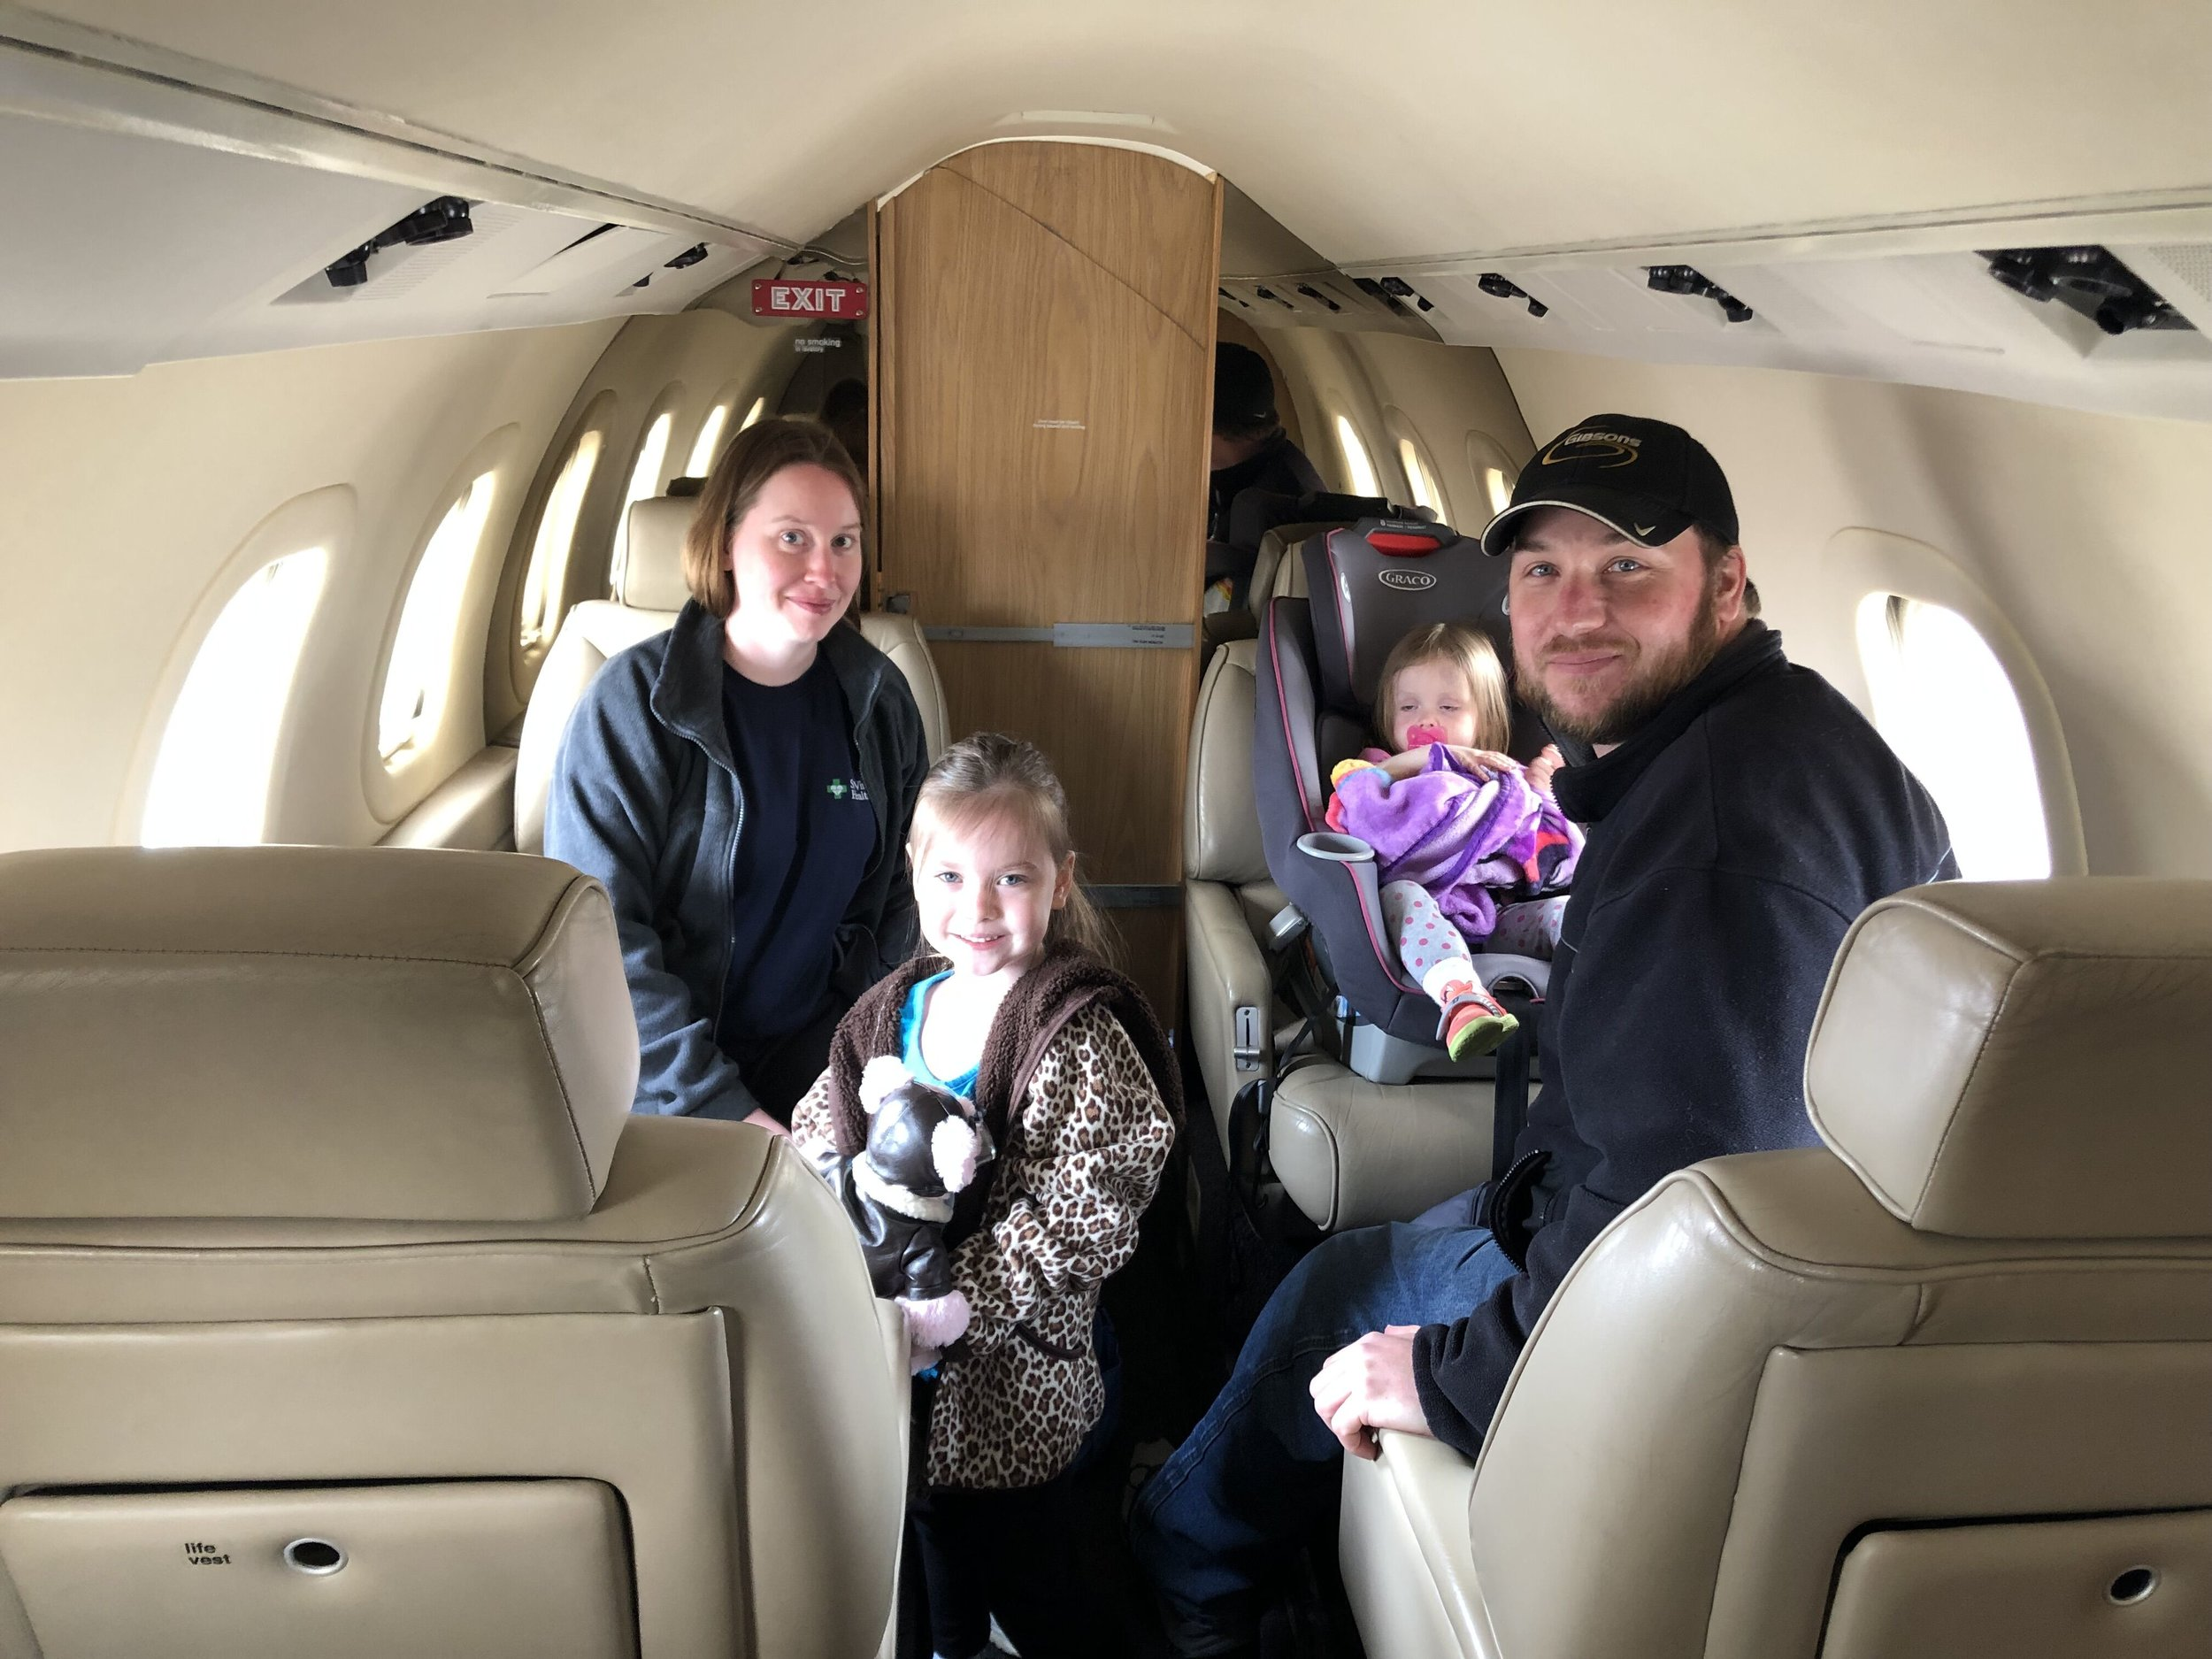 flight Requests - AeroAngel limits its flights to critically ill children who are not able to fly on a commercial airline flight due to their fragile medical conditions and/or critical care needs. Find out how we can help.